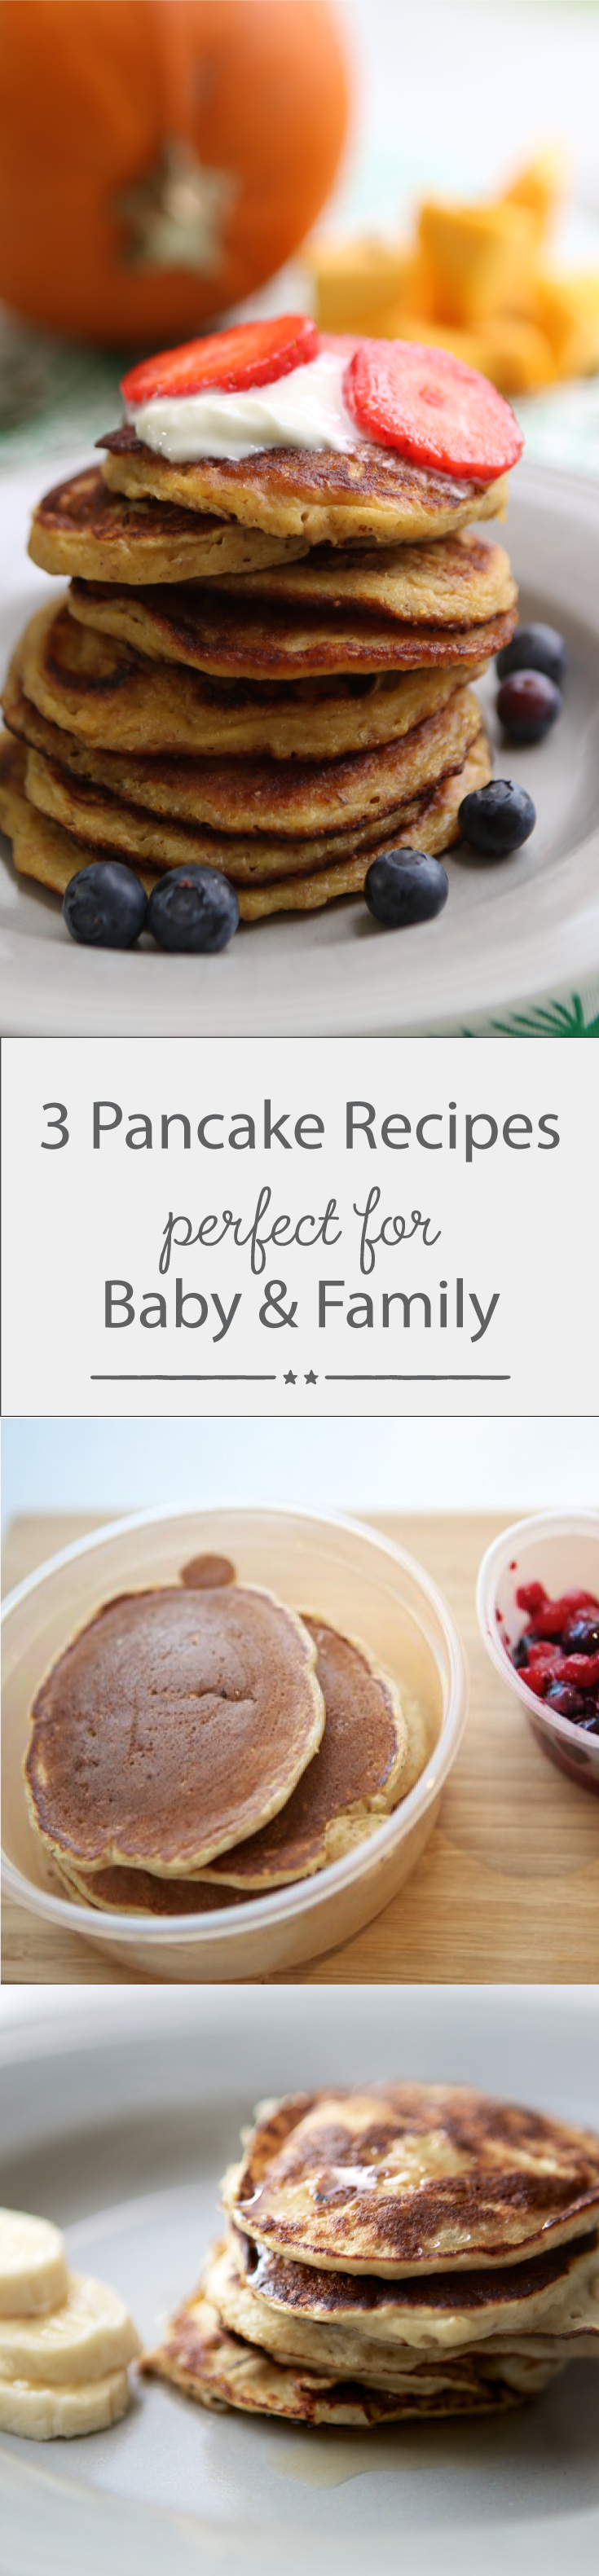 Our easy, healthy pancake recipes are perfect for baby and family. Whether it's Pancake Day or you just fancy delicious pancakes for breakfast, they are perfect for everyone to enjoy all year round. Repin for recipe inspiration!